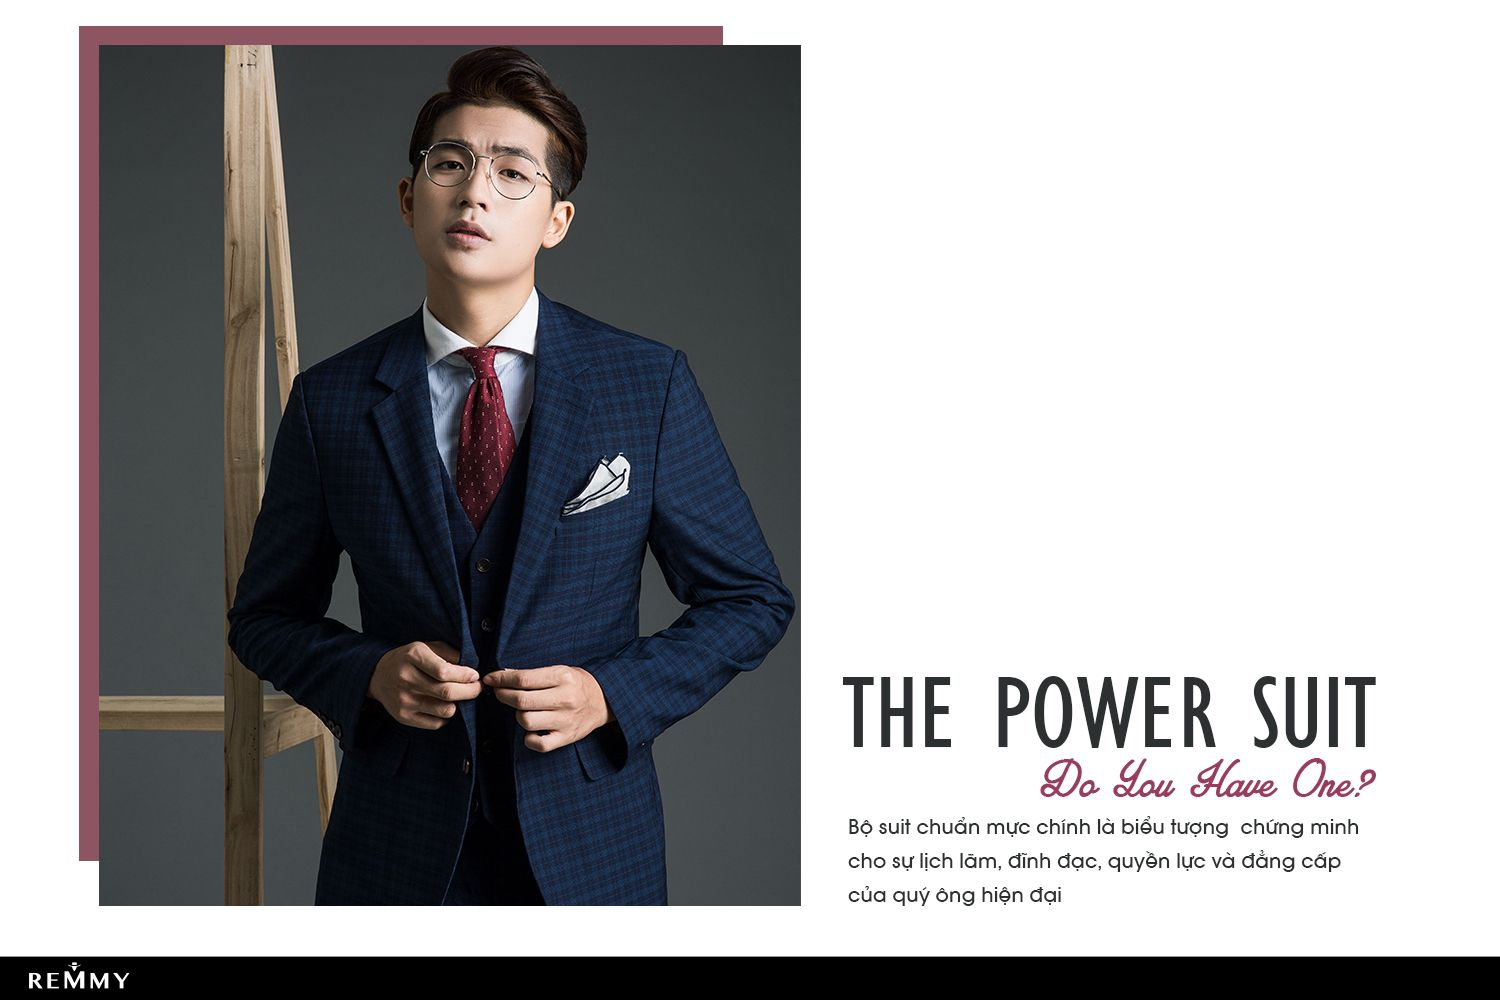 THE POWER SUIT- DO YOU HAVE ONE?